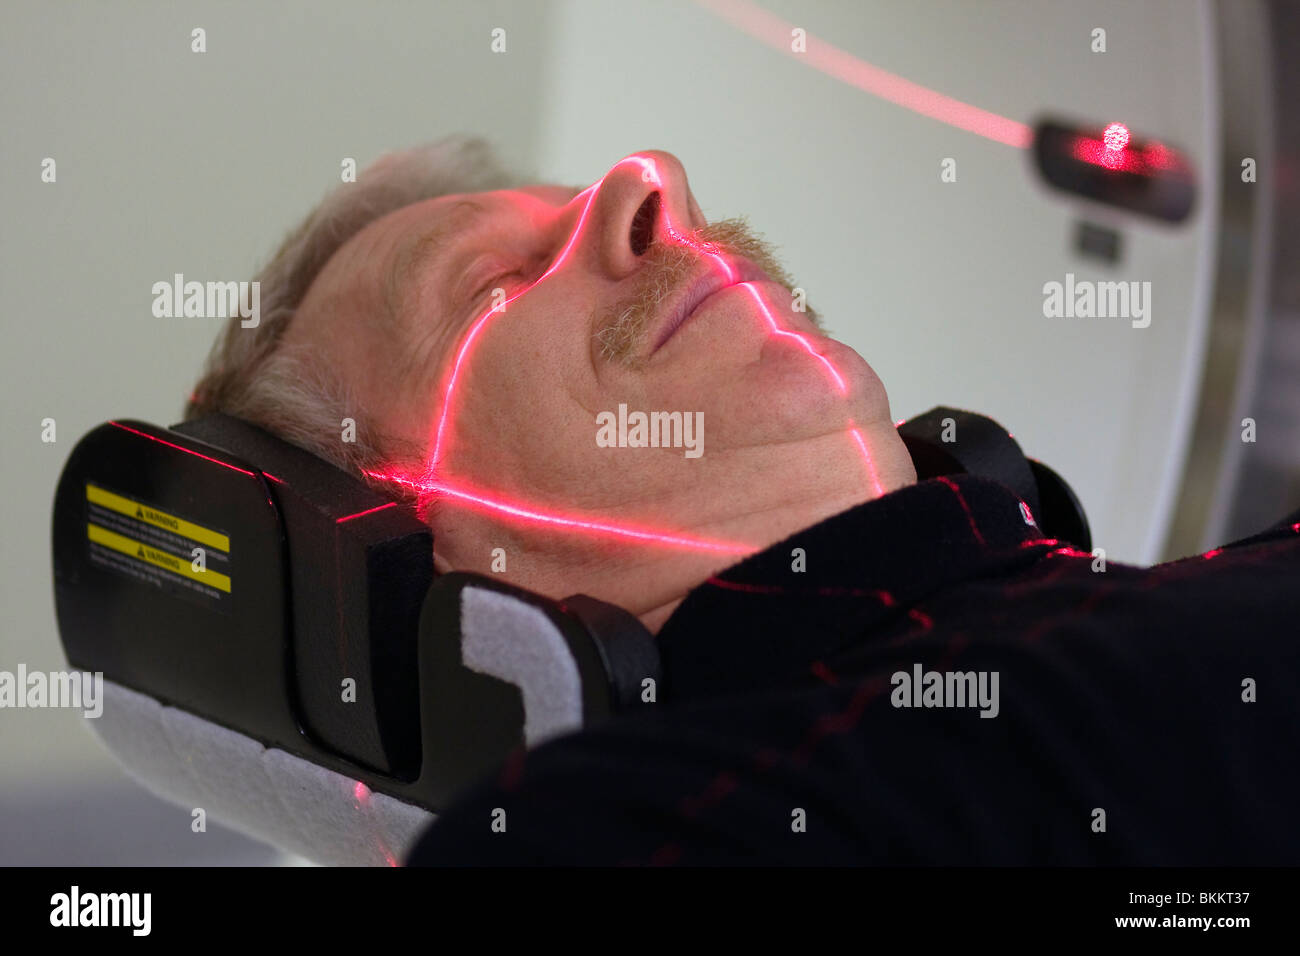 Man being adjusted to the right position before doing a CT (Computer Tomography) scan of the head. - Stock Image